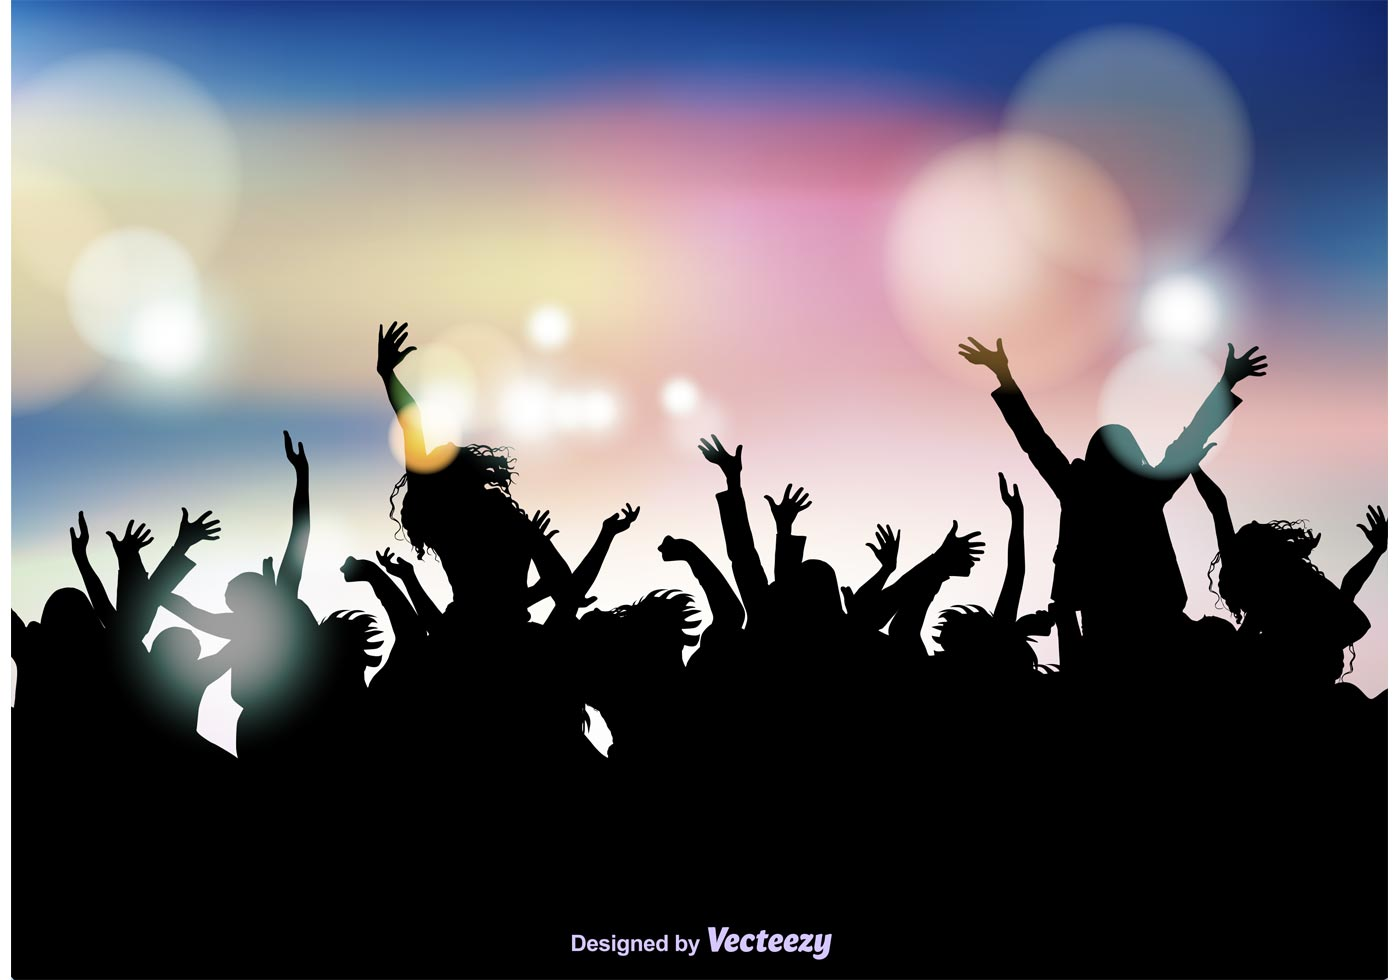 Crowd Silhouette Free Vector Art - (4,160 Free Downloads) | 1400 x 980 jpeg 73kB